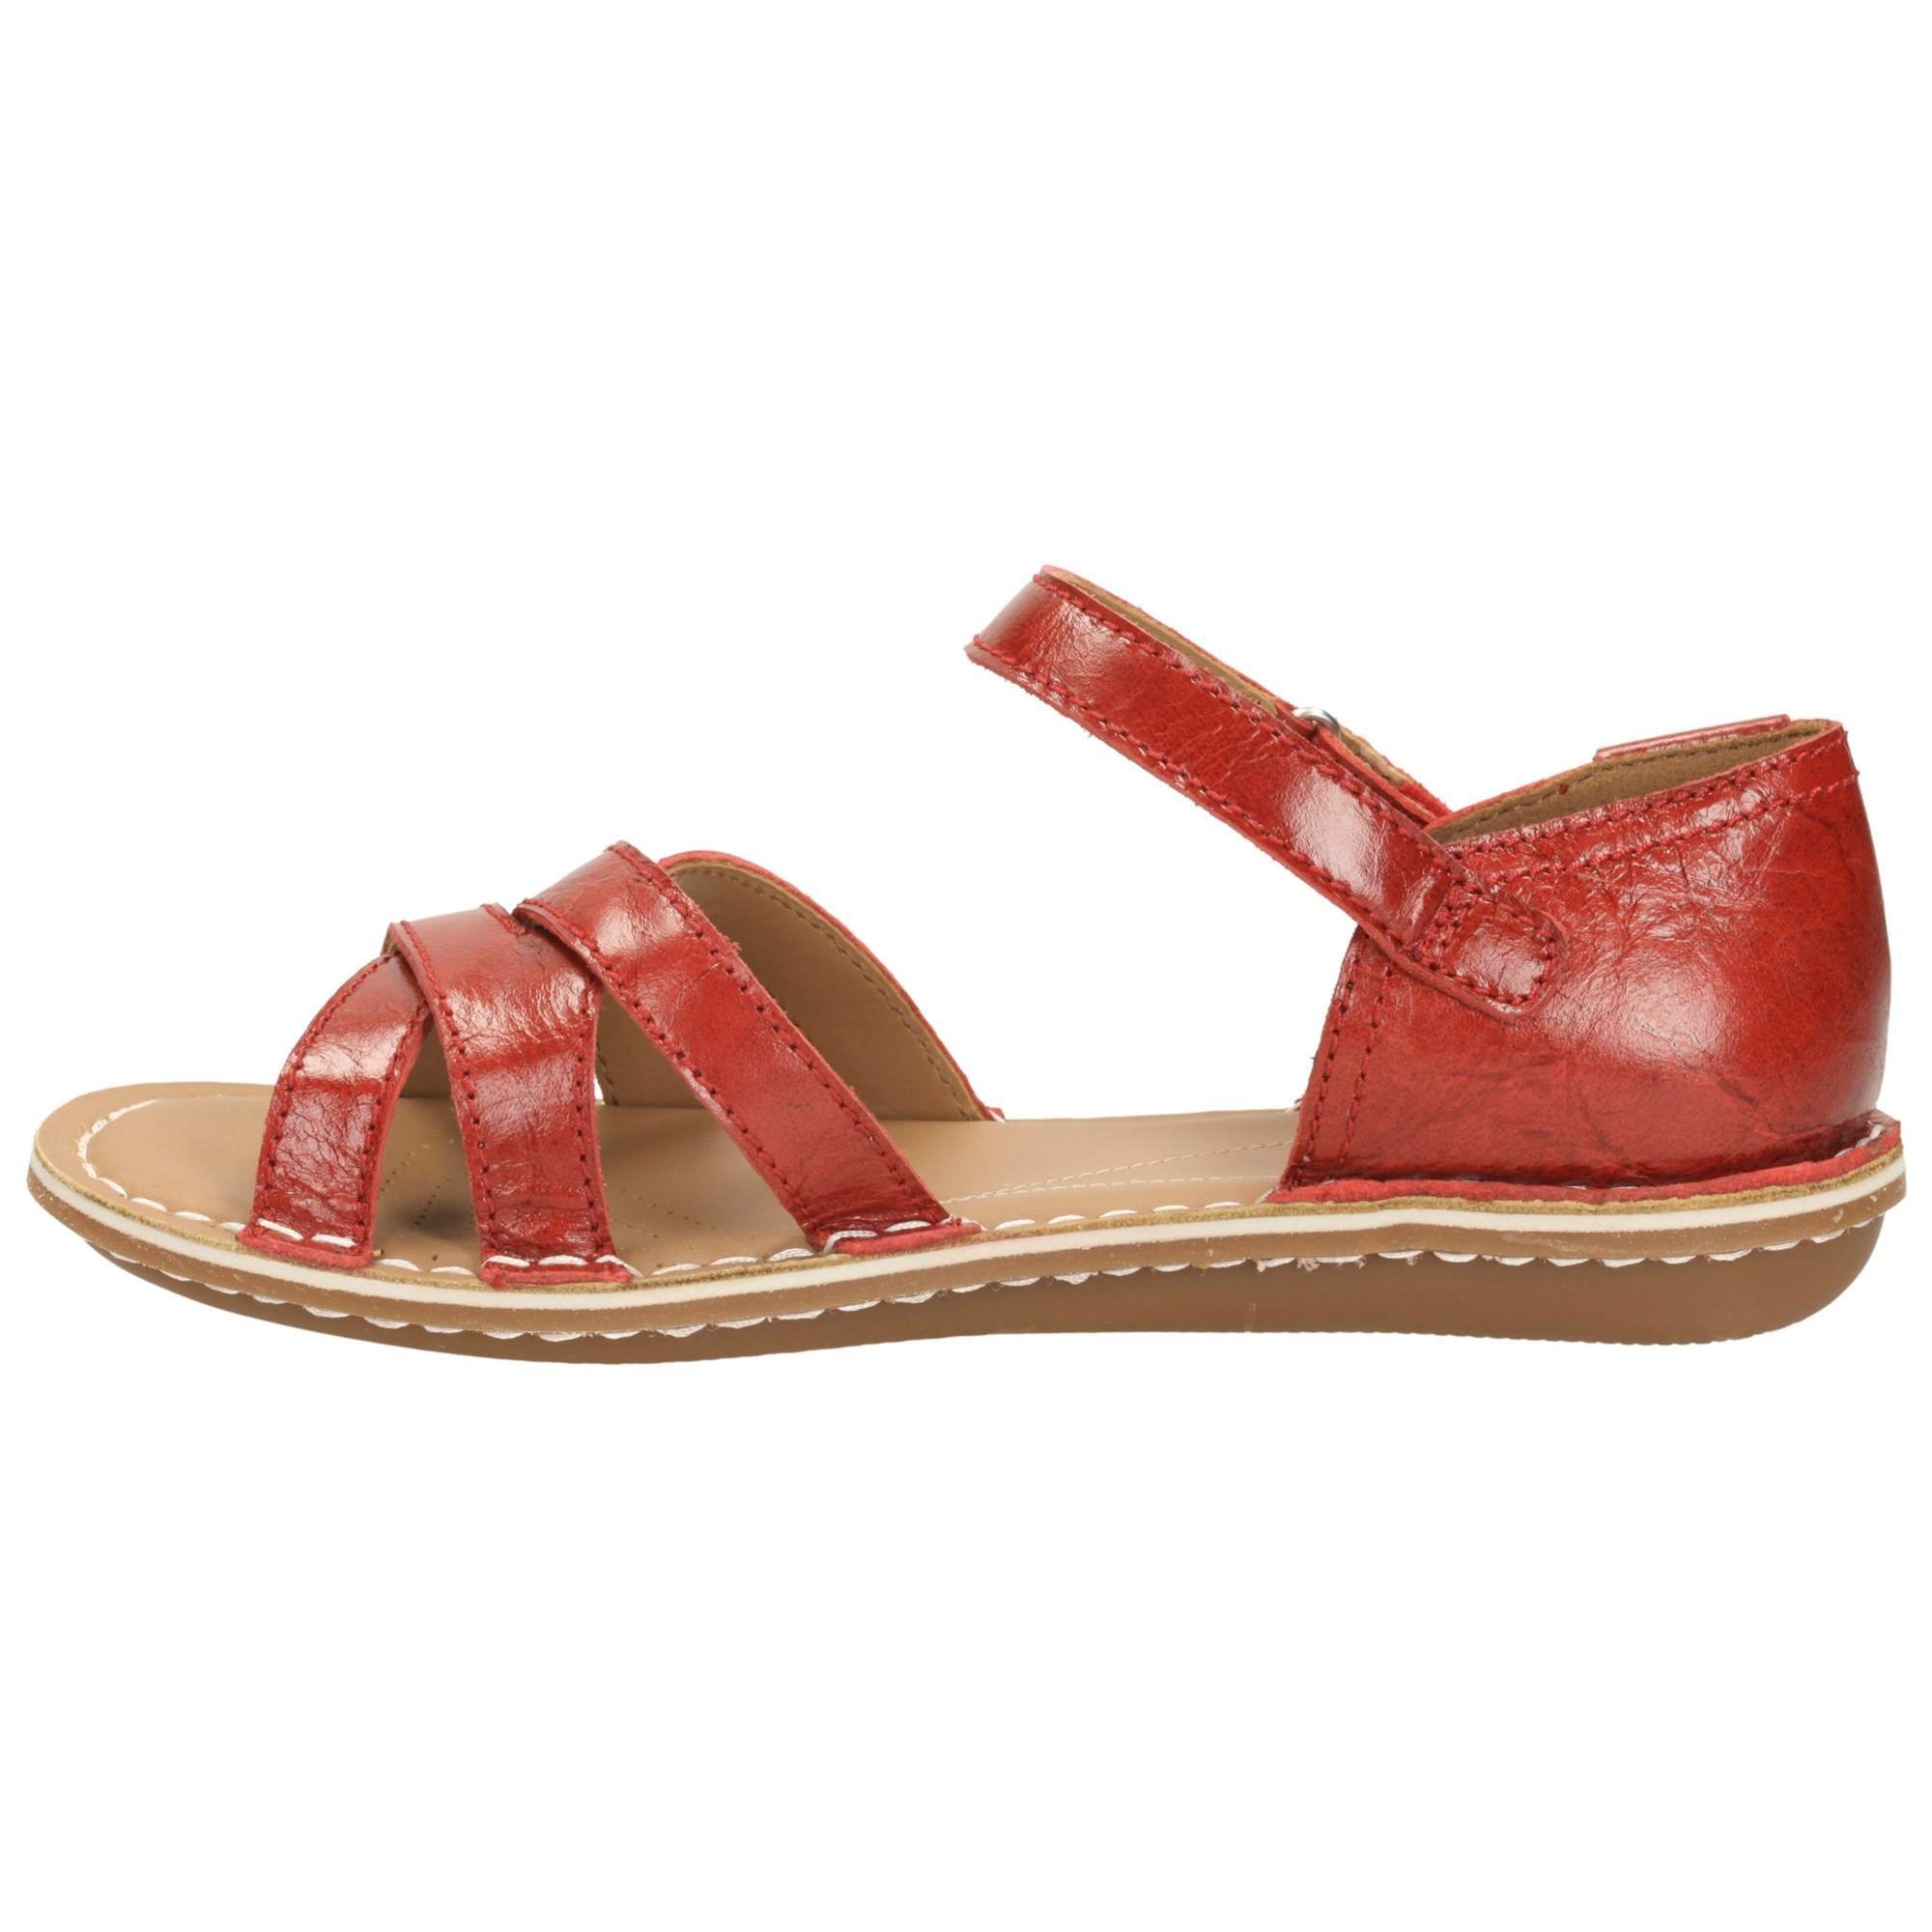 Clarks Tustin Sahara Leather Sandals In Red Lyst